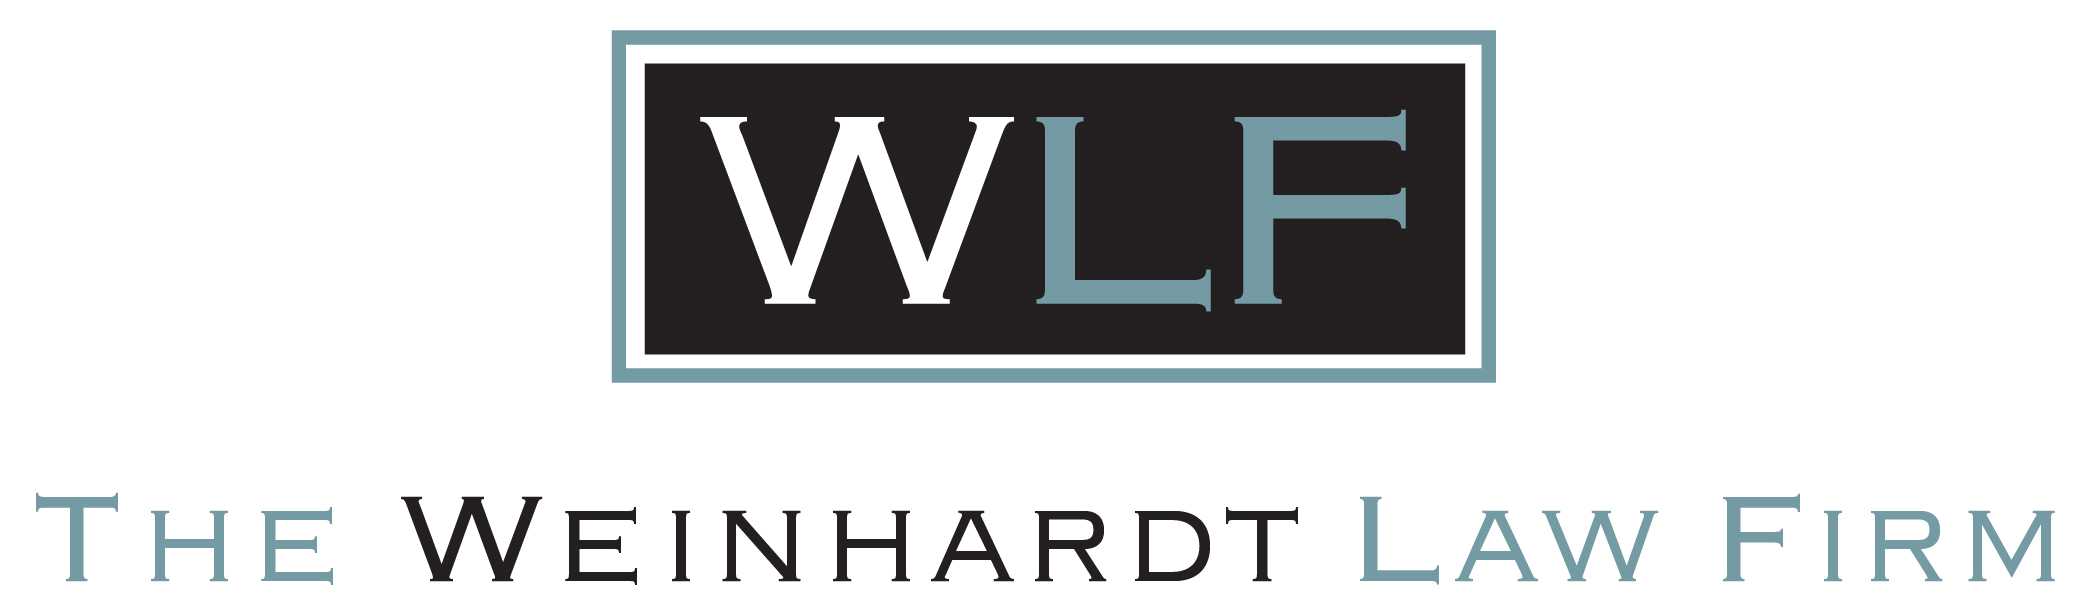 The Weinhardt Law Firm logo